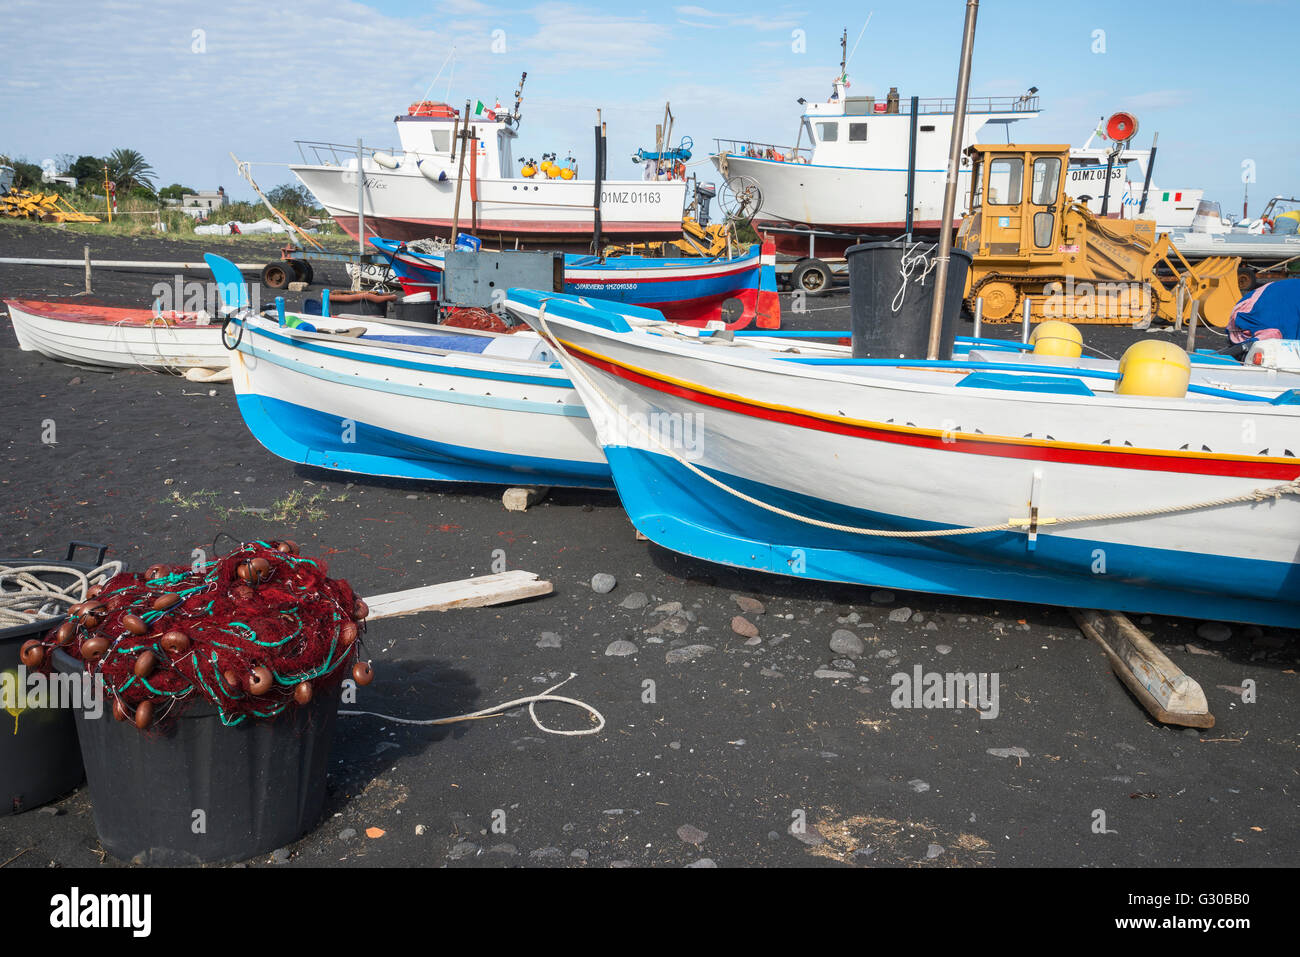 Fishing boats, Stromboli, Aeolian Islands, UNESCO World Heritage Site, Sicily, Italy, Mediterranean, Europe - Stock Image